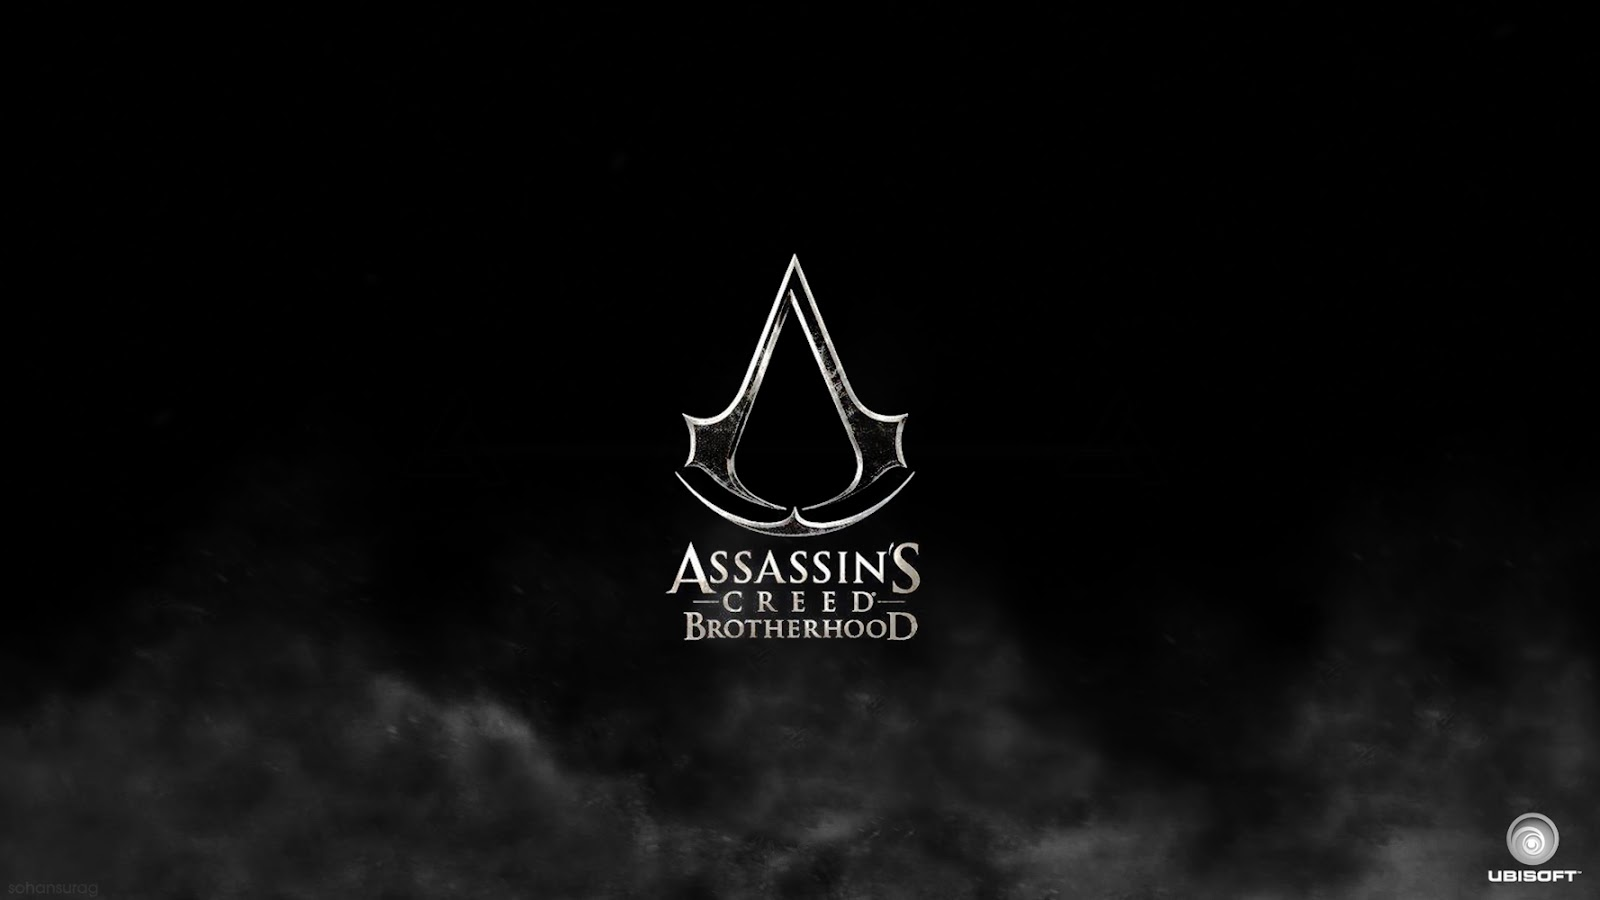 central wallpaper: assassin's creed logo hd wallpapers